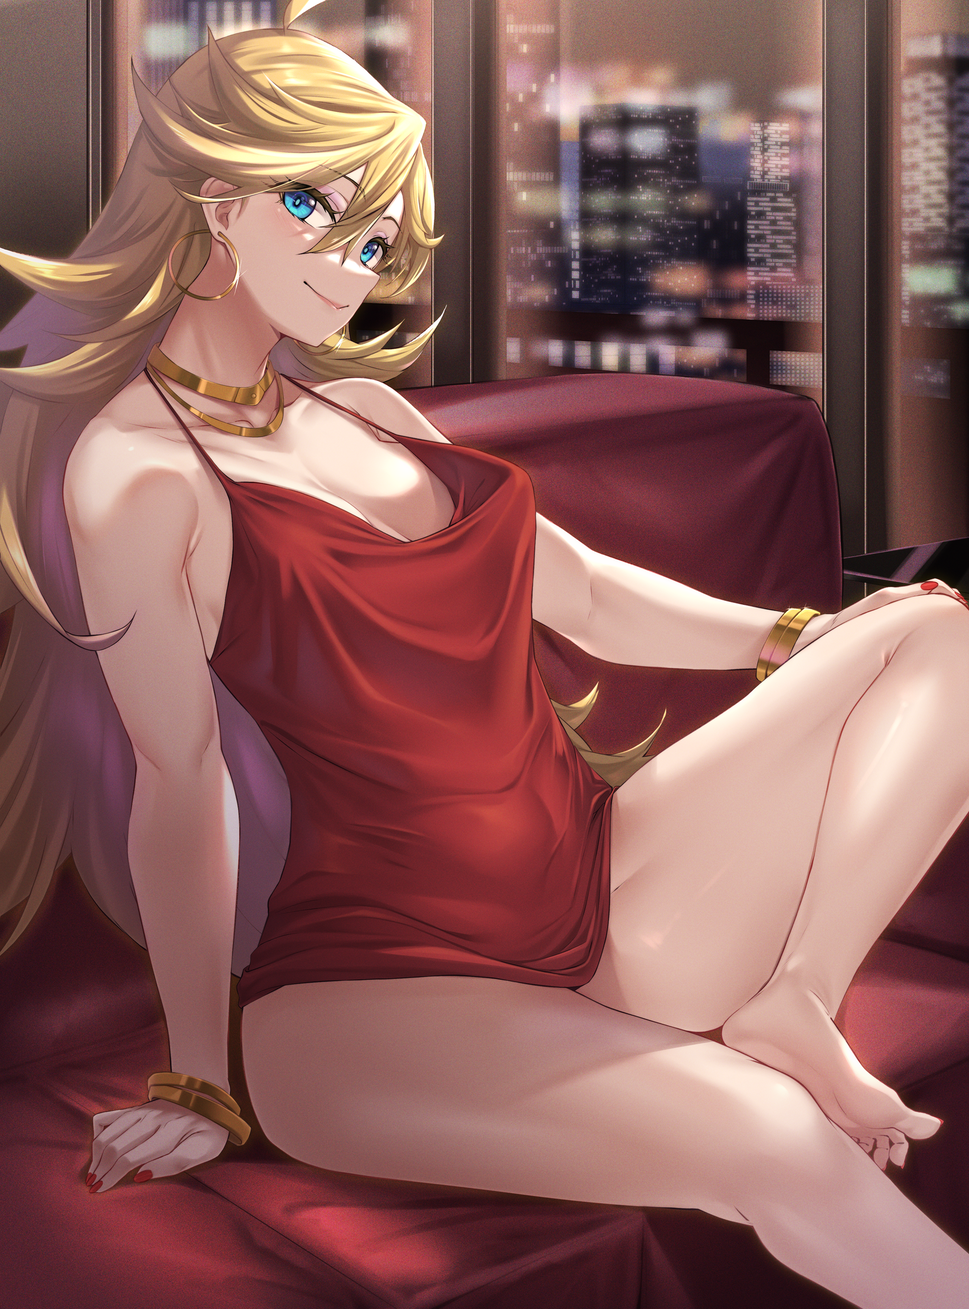 1girl bangle bare_legs bare_shoulders barefoot blonde_hair blue_eyes bracelet breasts camisole city cityscape earrings feet foot_out_of_frame gold_bracelet gold_earrings hair_between_eyes hand_on_own_knee highres hoop_earrings jewelry legs lips long_hair looking_at_viewer medium_breasts moisture_(chichi) nail_polish necklace panty_&_stocking_with_garterbelt panty_(psg) red_camisole red_nails sitting smile soles solo thighs toes